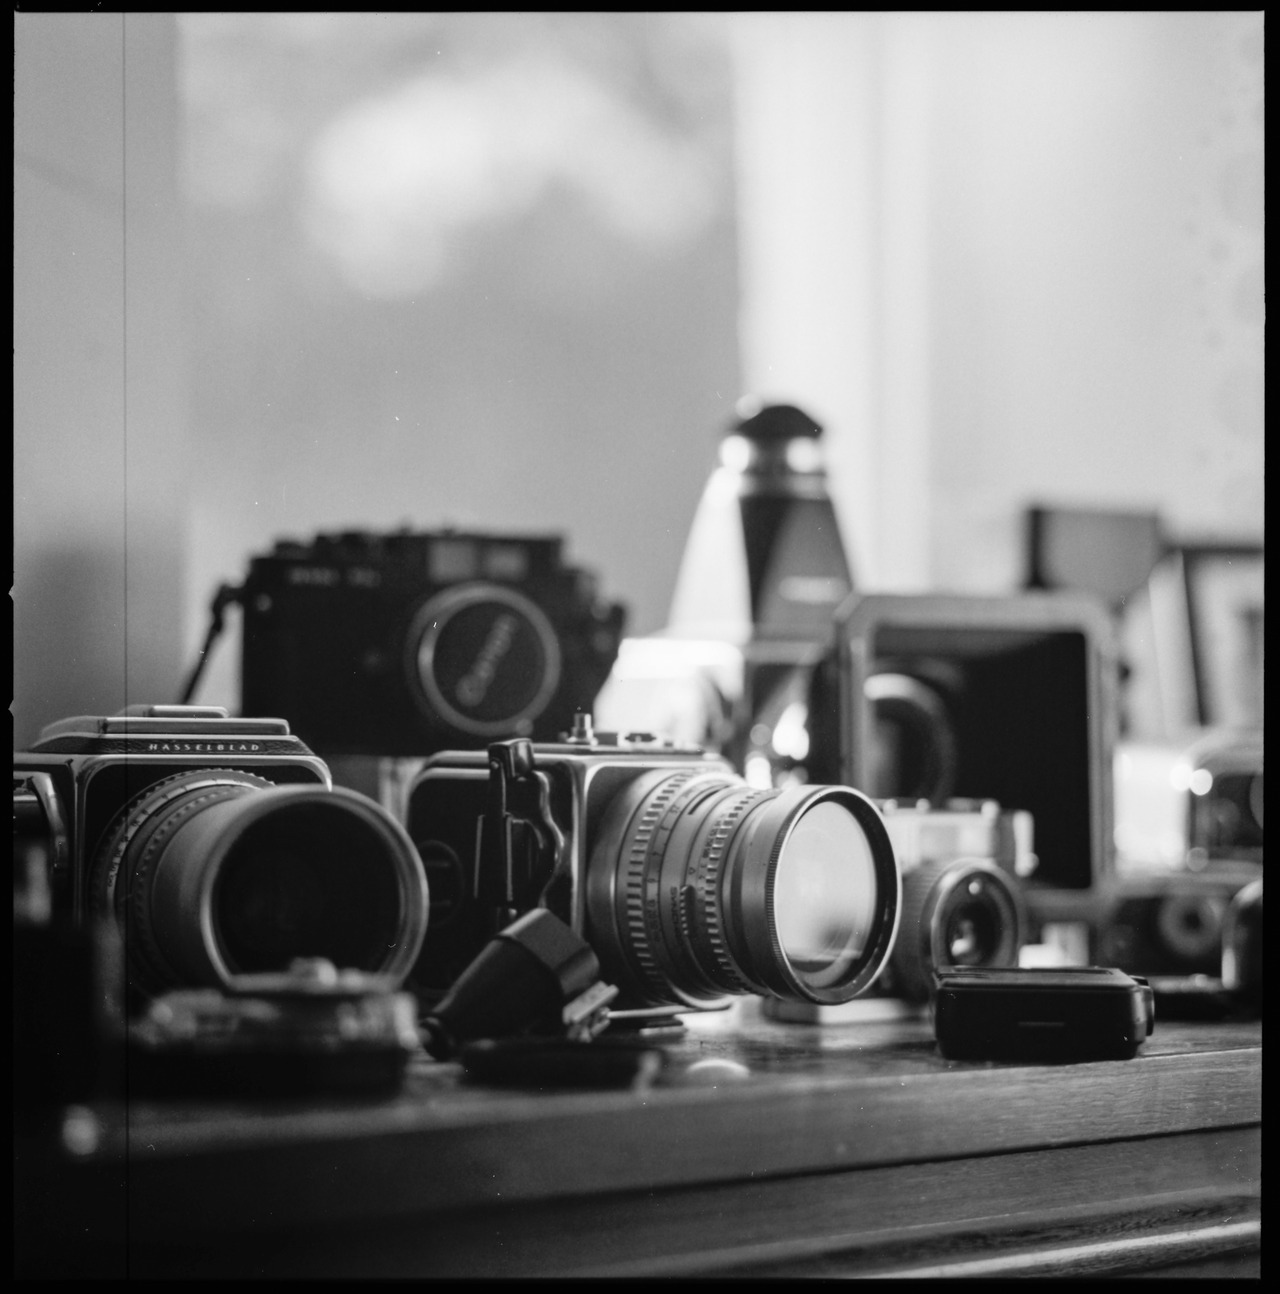 Tools Hasselblad 500C/M Zeiss Prontor CF T* 80mm f/2.8 Ilford Delta Pro 100 in HC-110 B CanoScan 8800F